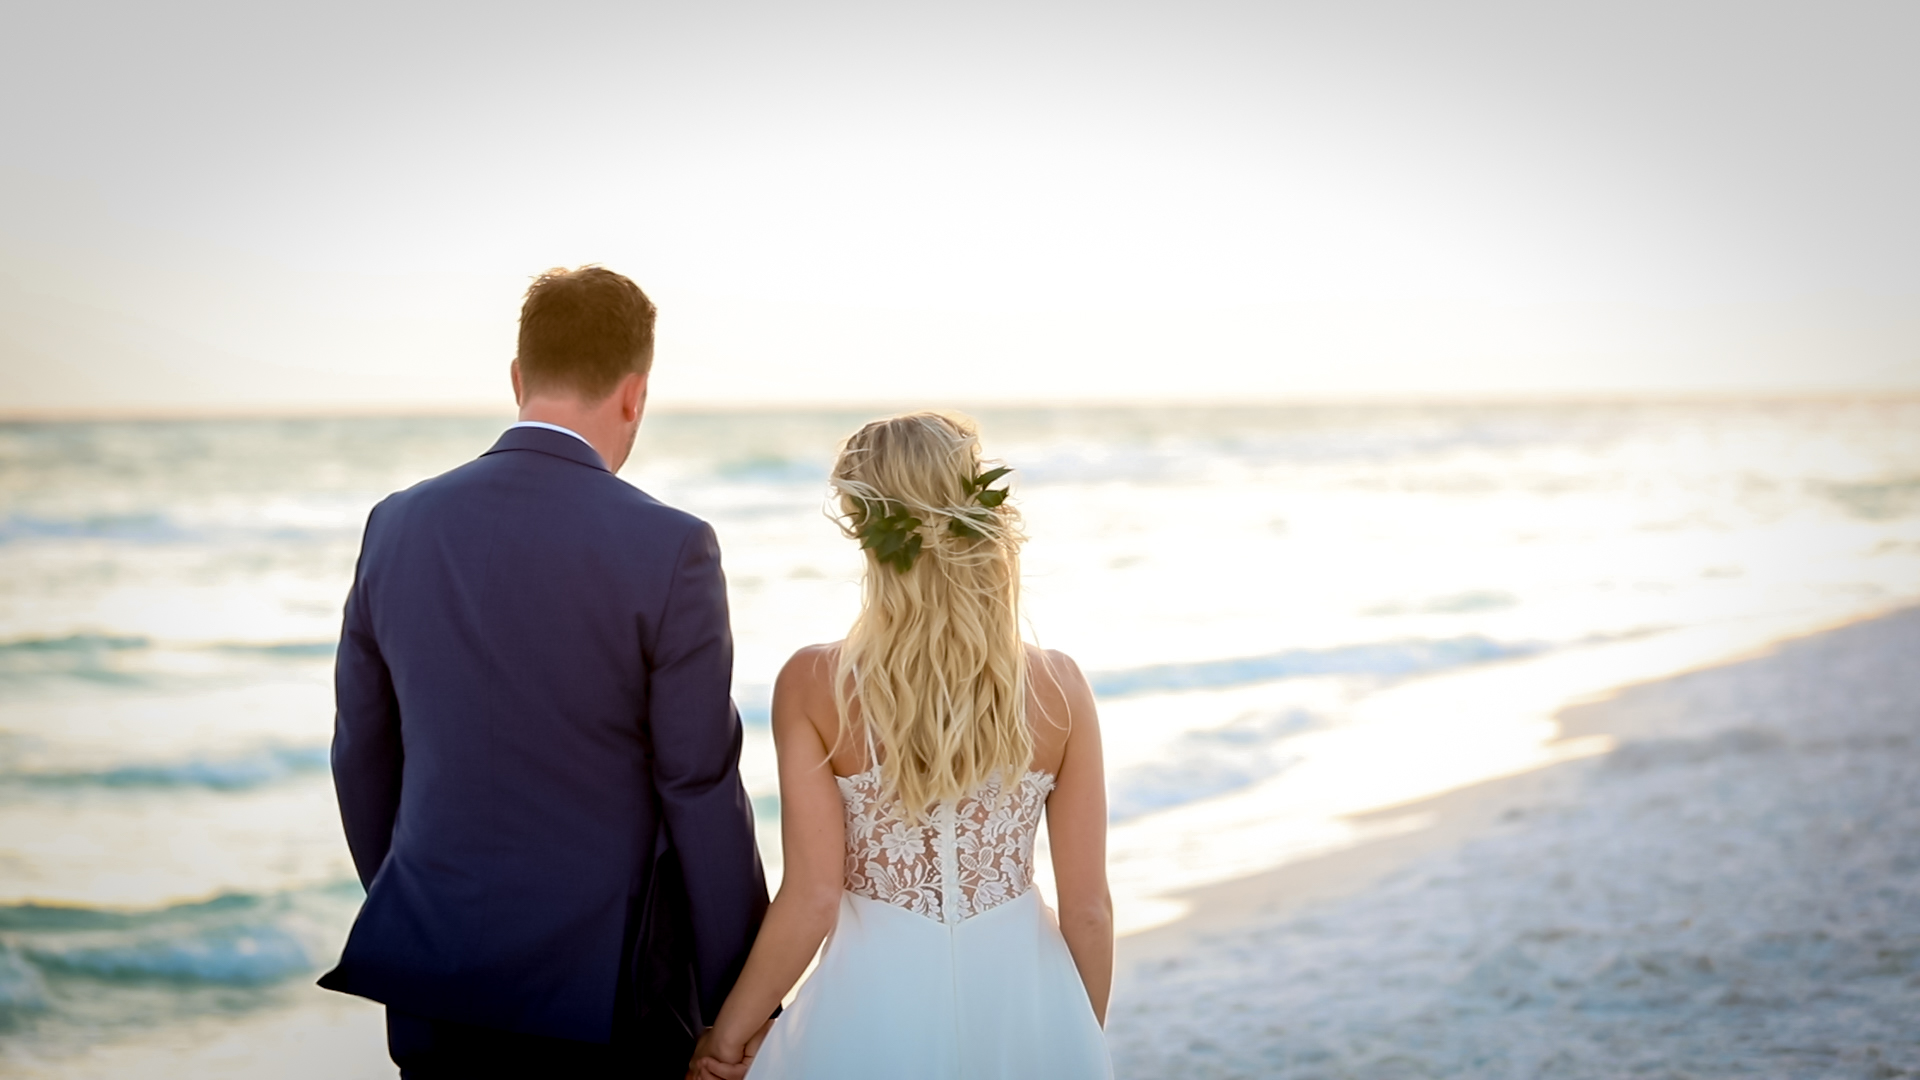 Bride and groom walking on the beach in Seaside, Florida at sunset